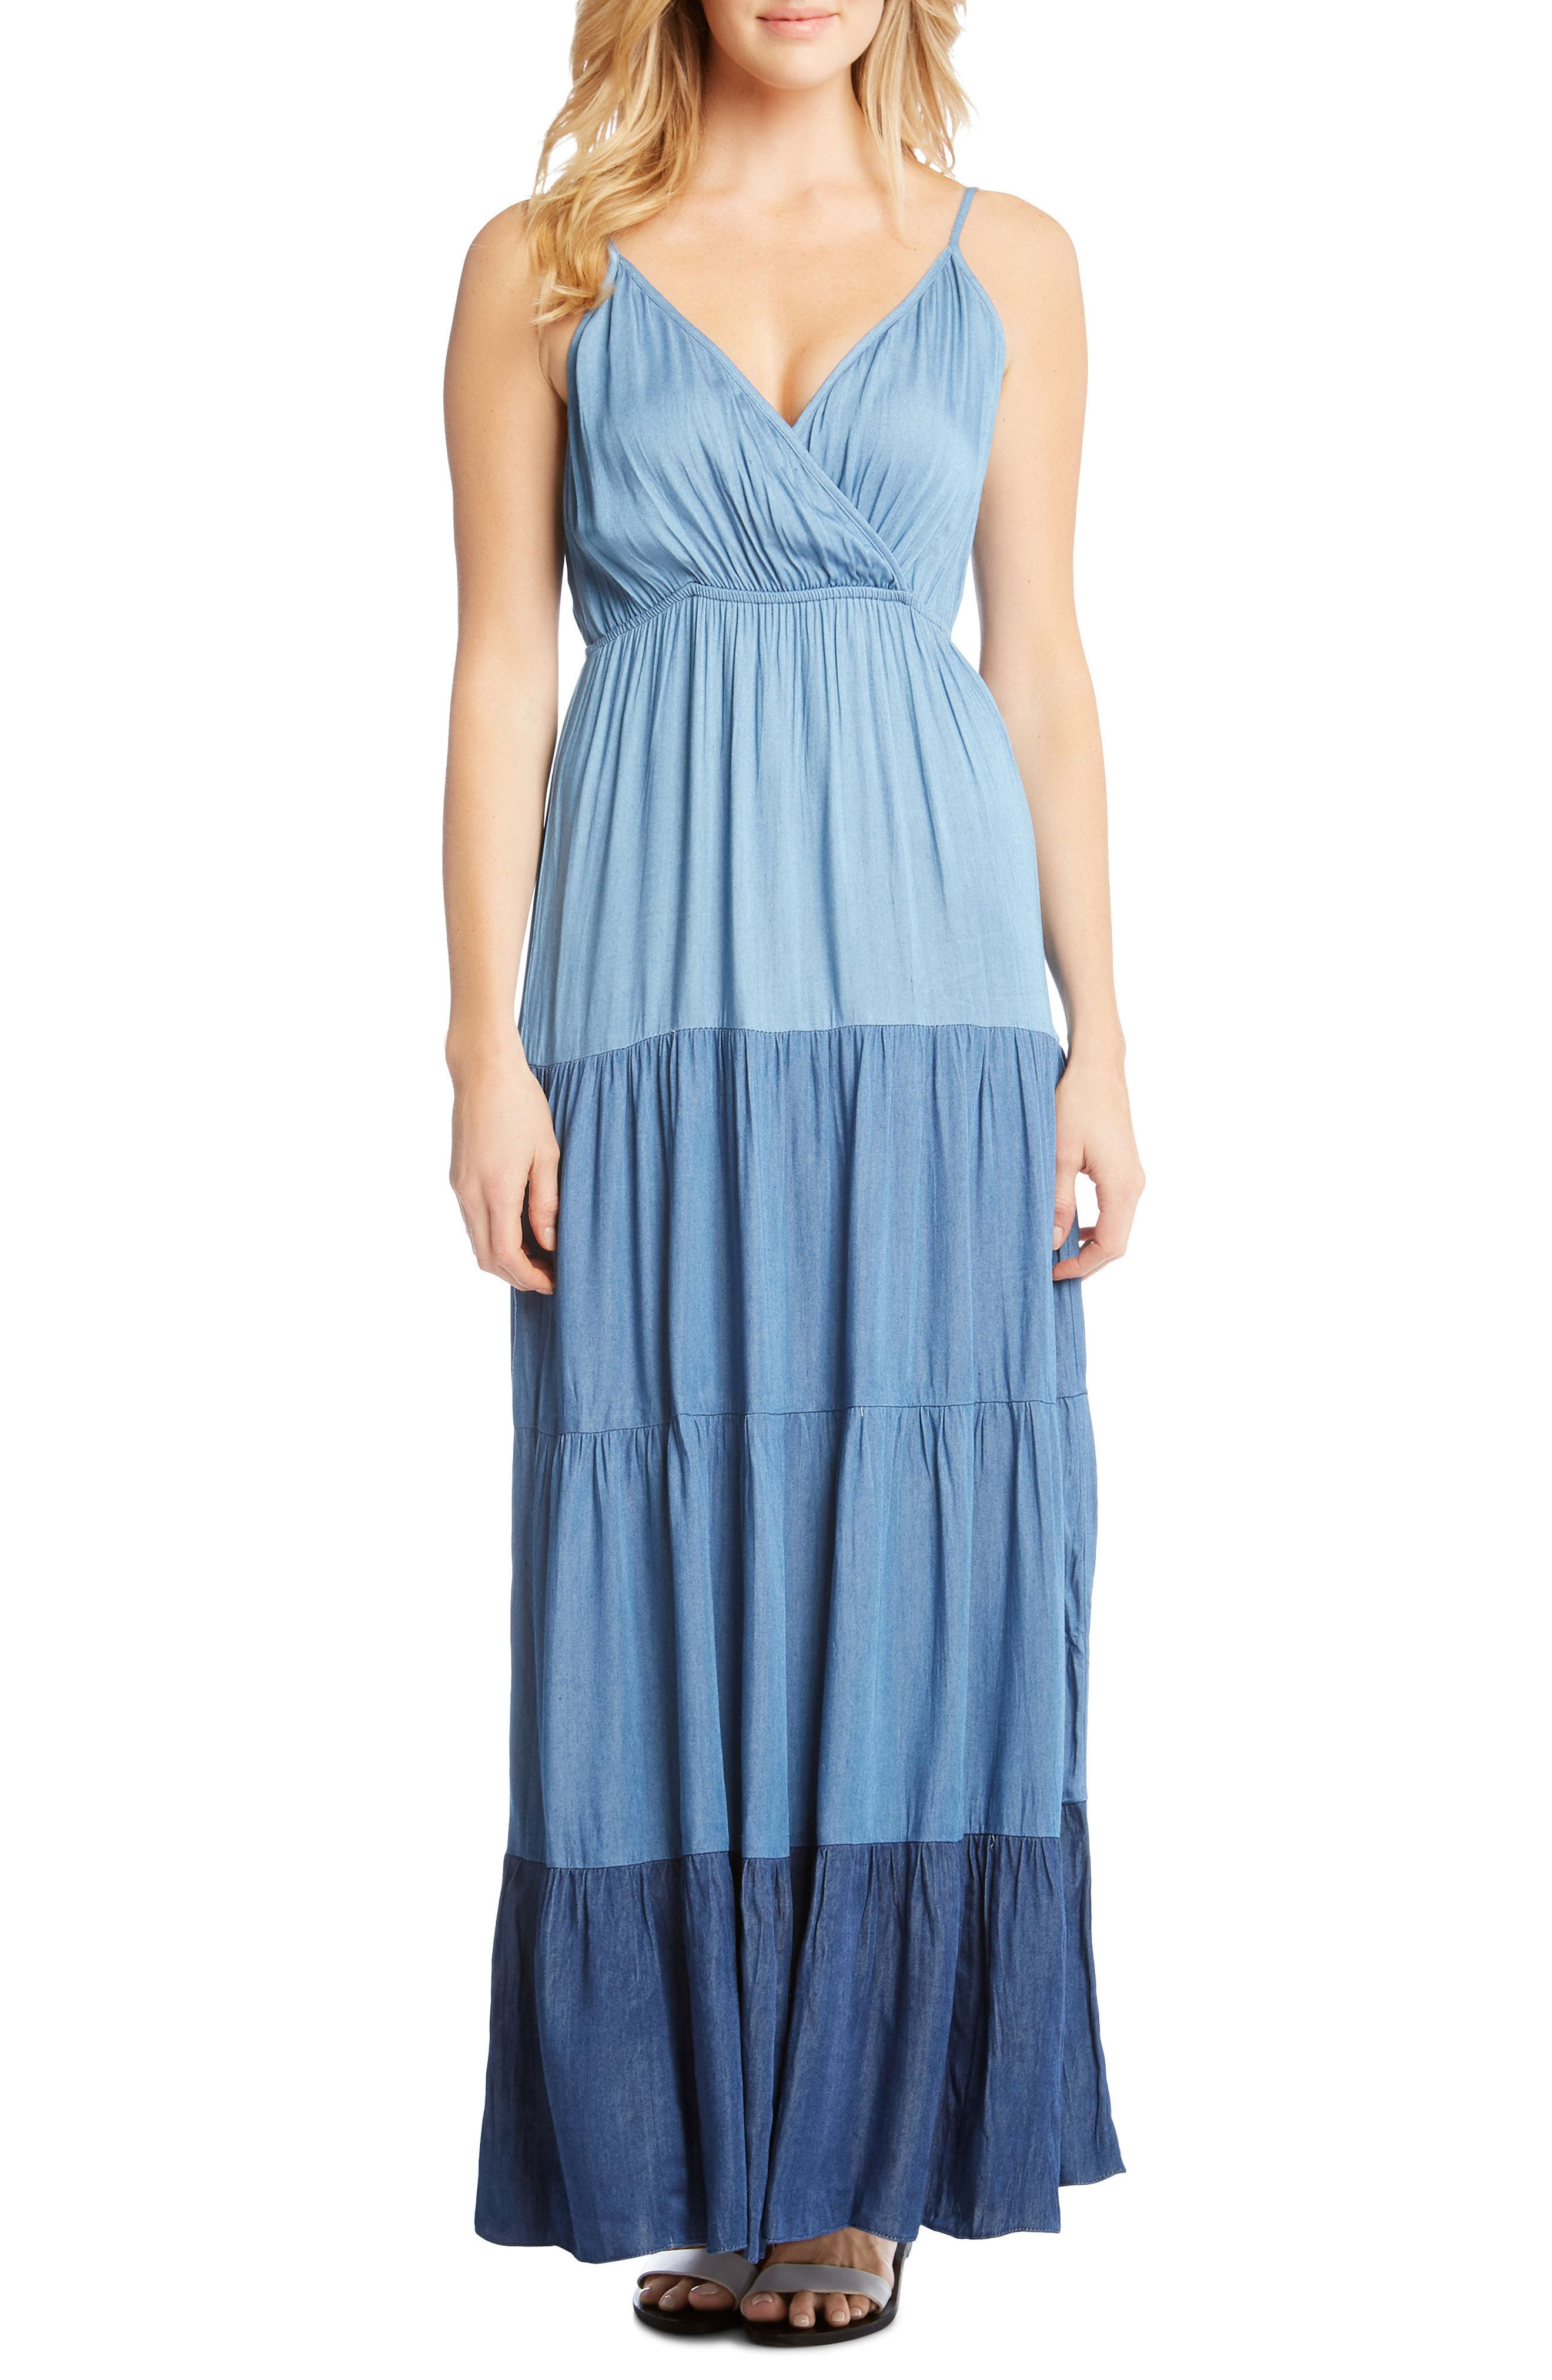 Tiered Chambray Maxi Dress,                         Main,                         color, Multi